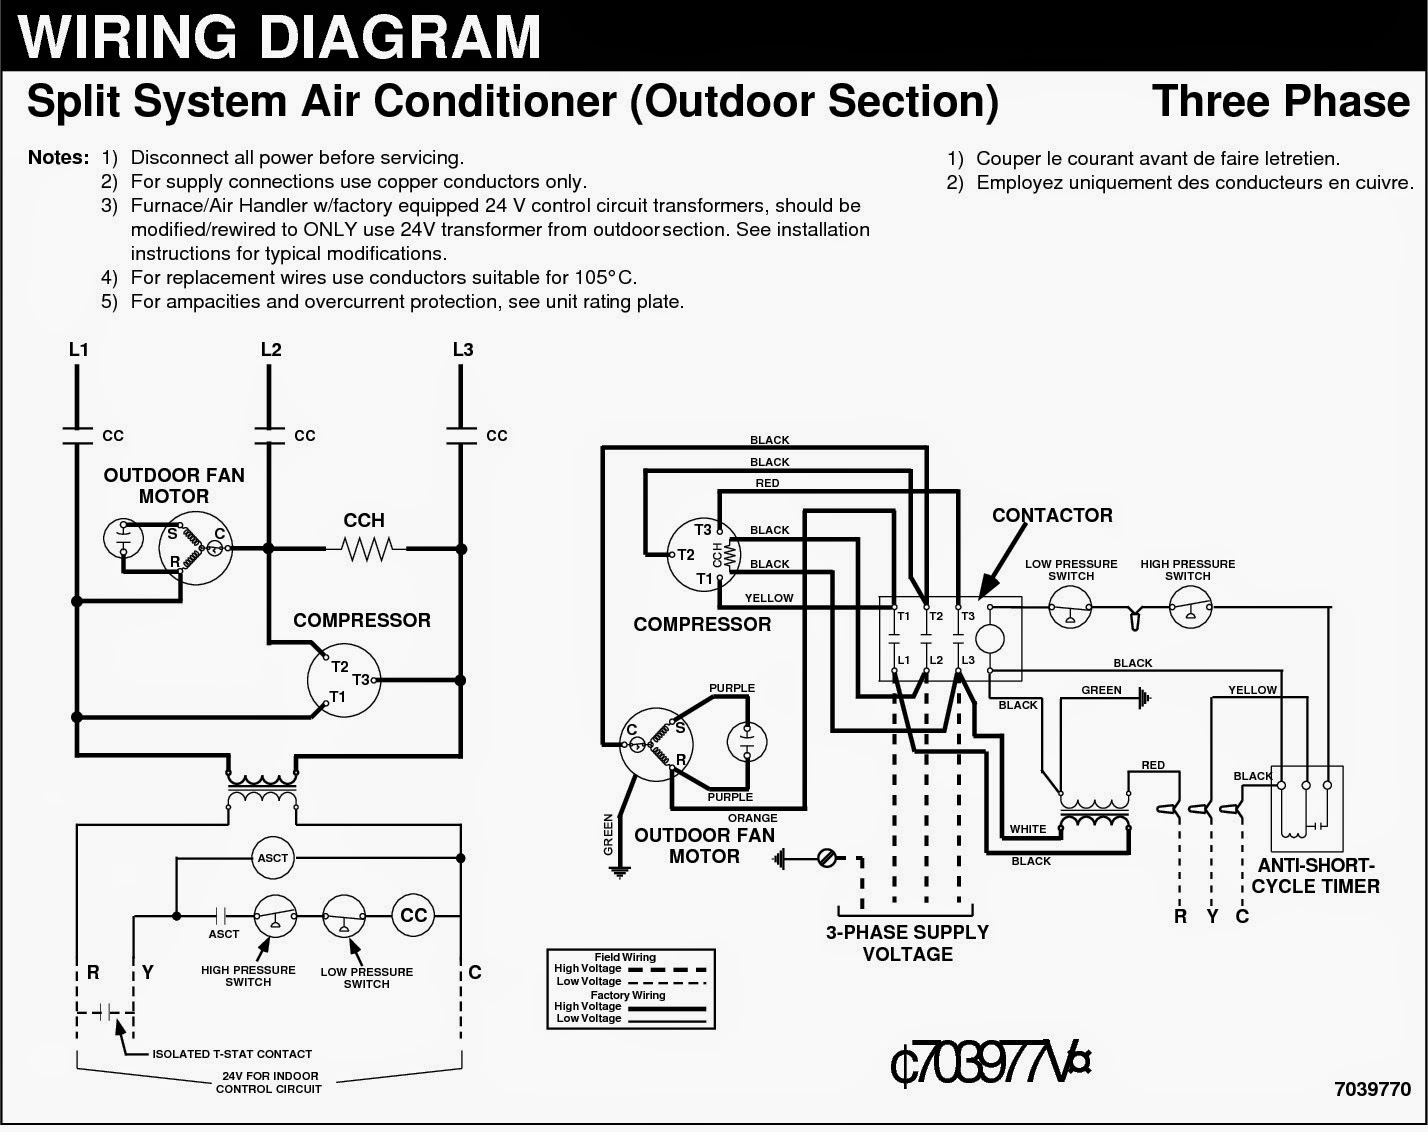 electrical wiring diagrams for dummies with Wiring Diagram 1 Phase Ac Split Unit on Wiringdiagrams furthermore Office Light Switch further House Electrical Wiring furthermore P0710 further Electrolux Range Wiring Diagram.